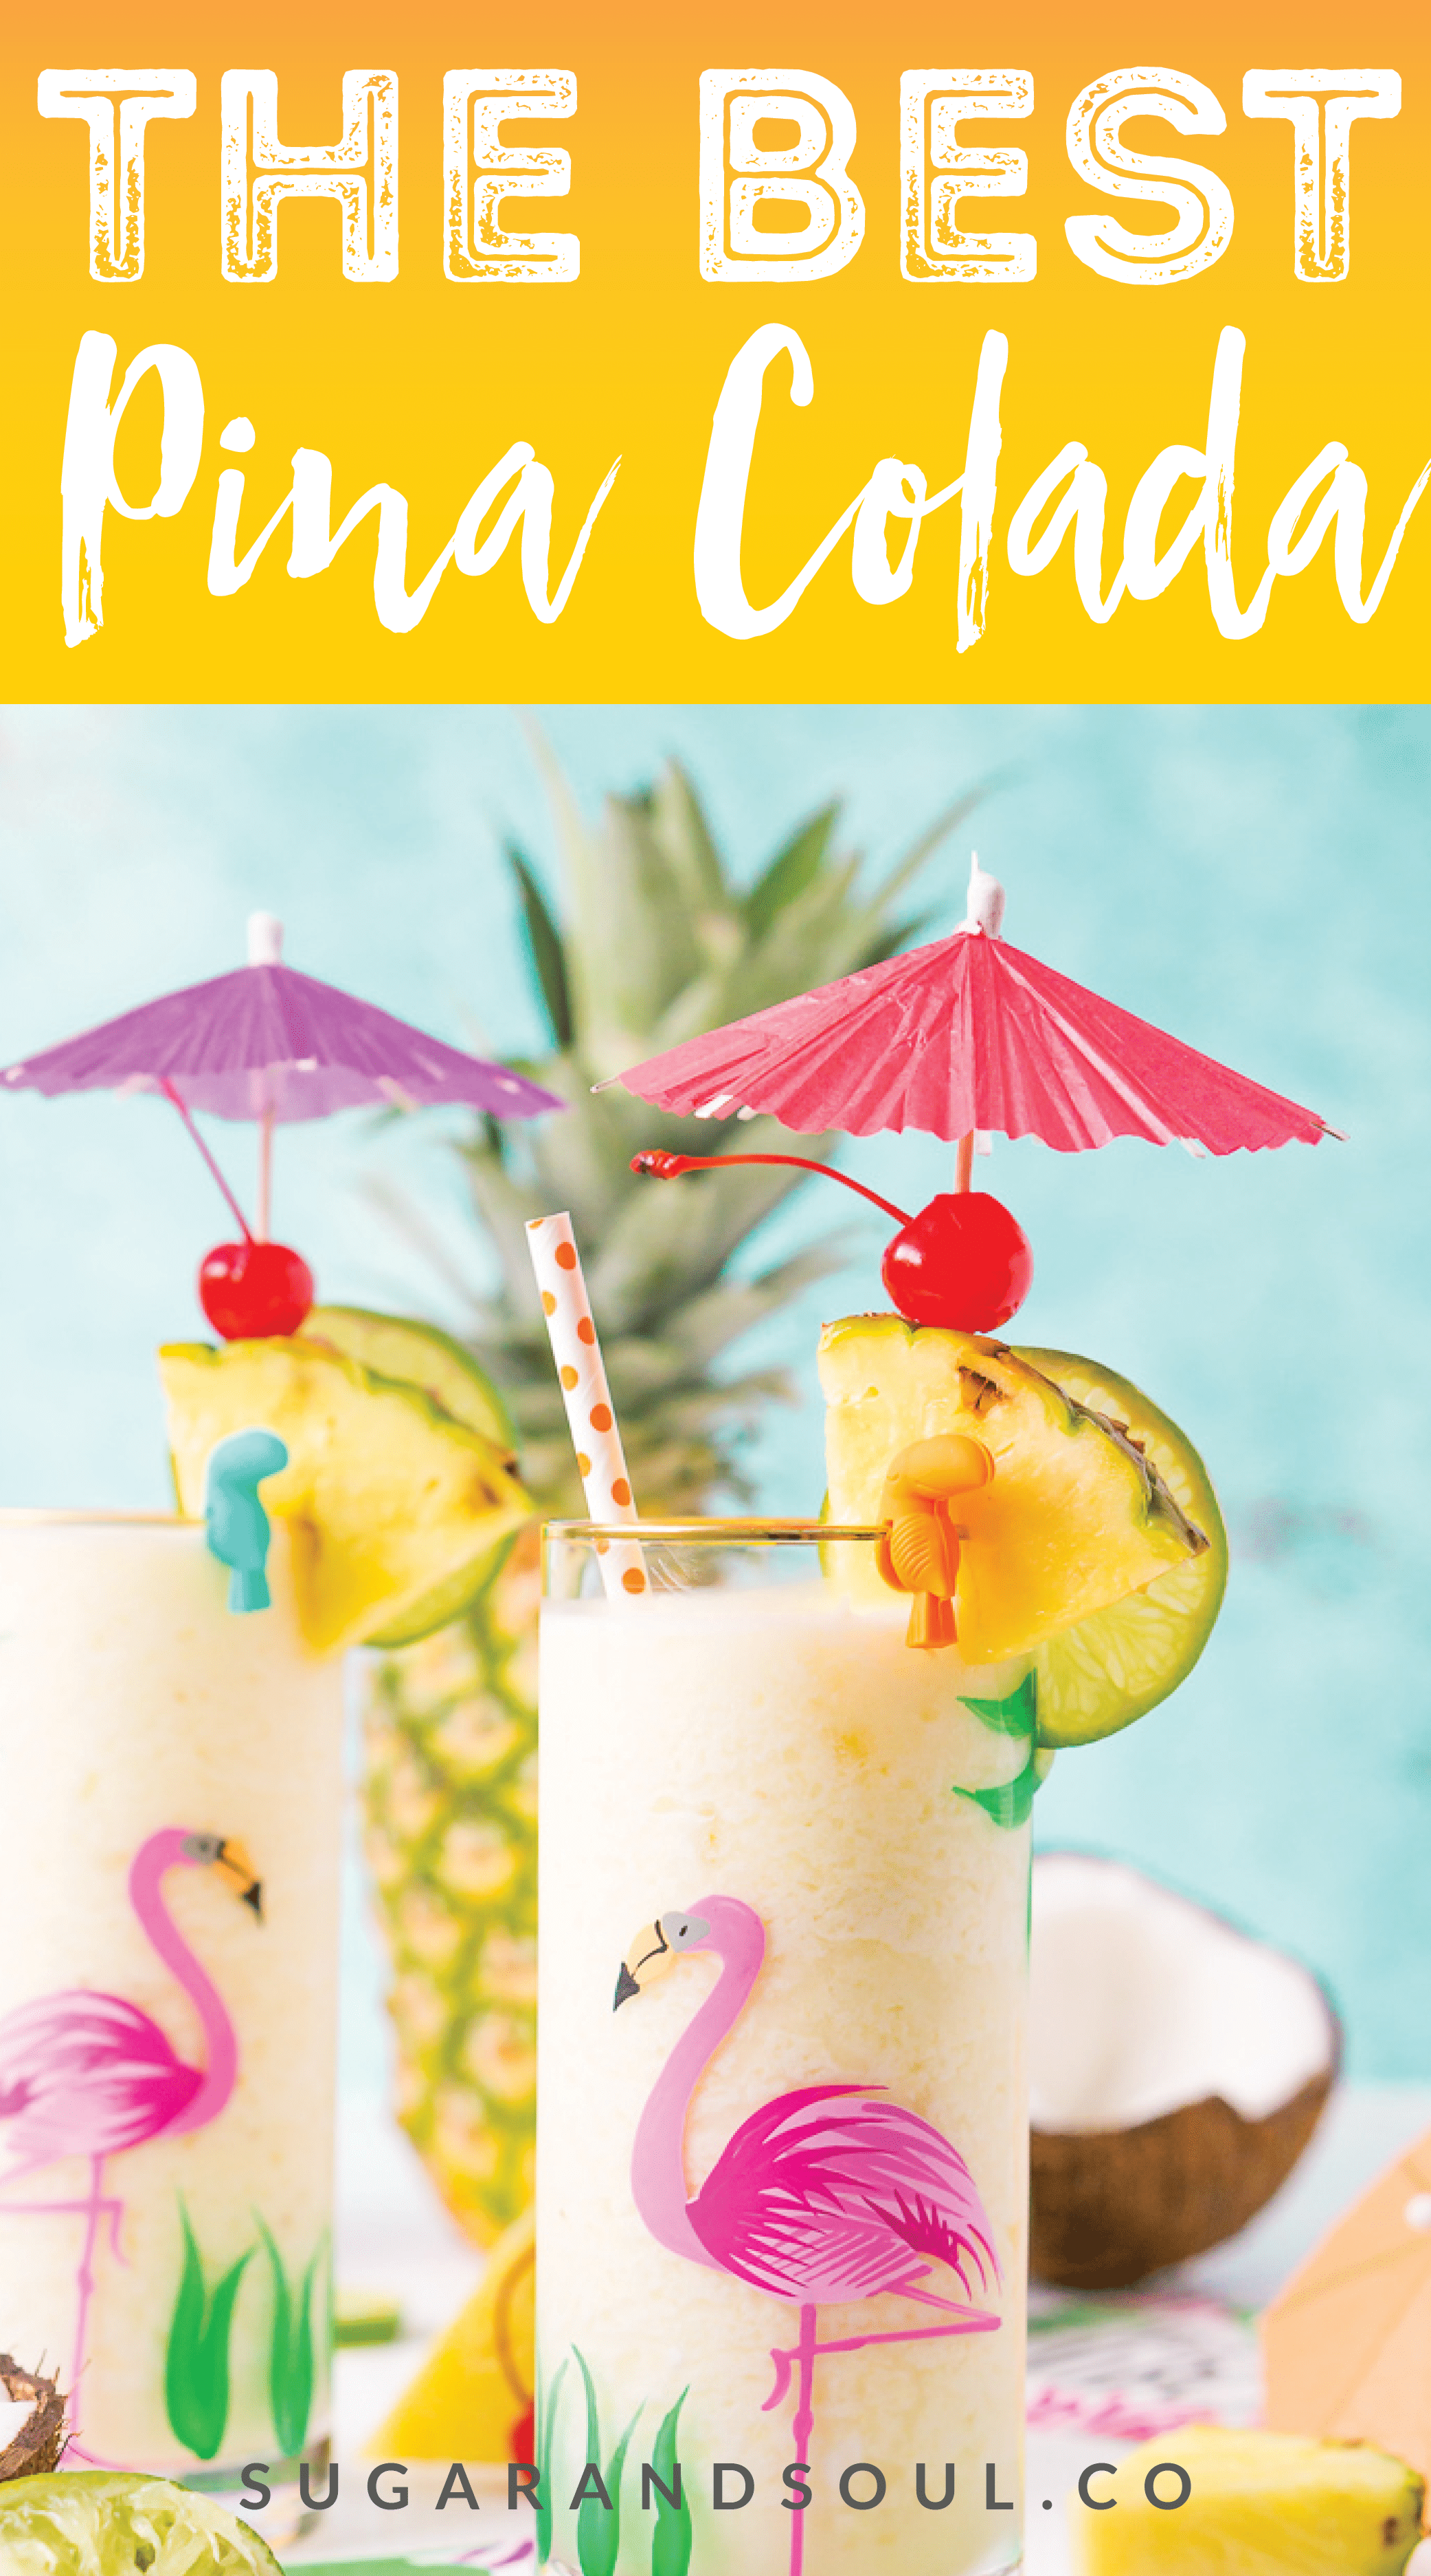 This Pina Colada recipe is a deliciously fruity and frozen drink made with creamy coconut and sweet pineapple and zesty lime juice. Add rum to make things lively or keep it virgin for the whole family to enjoy! via @sugarandsoulco